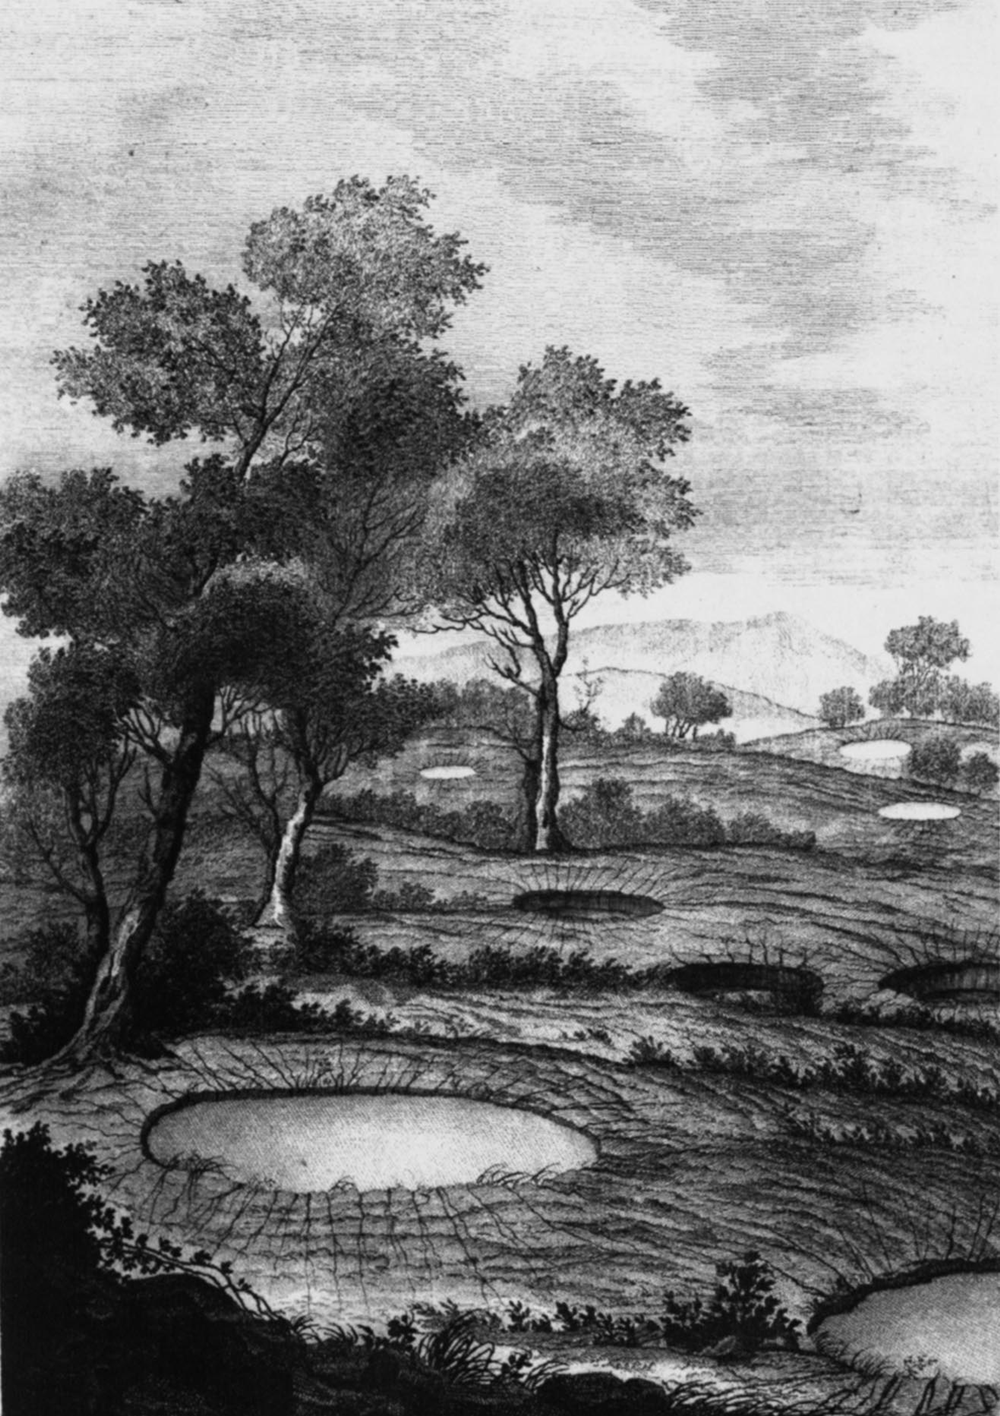 Circular_settlement_of_sandy_deposits_in_the_Rosarno_Plain_(from_an_original_etching_in_Sarconi,_1784)_-_1783_Calabrian_earthquake